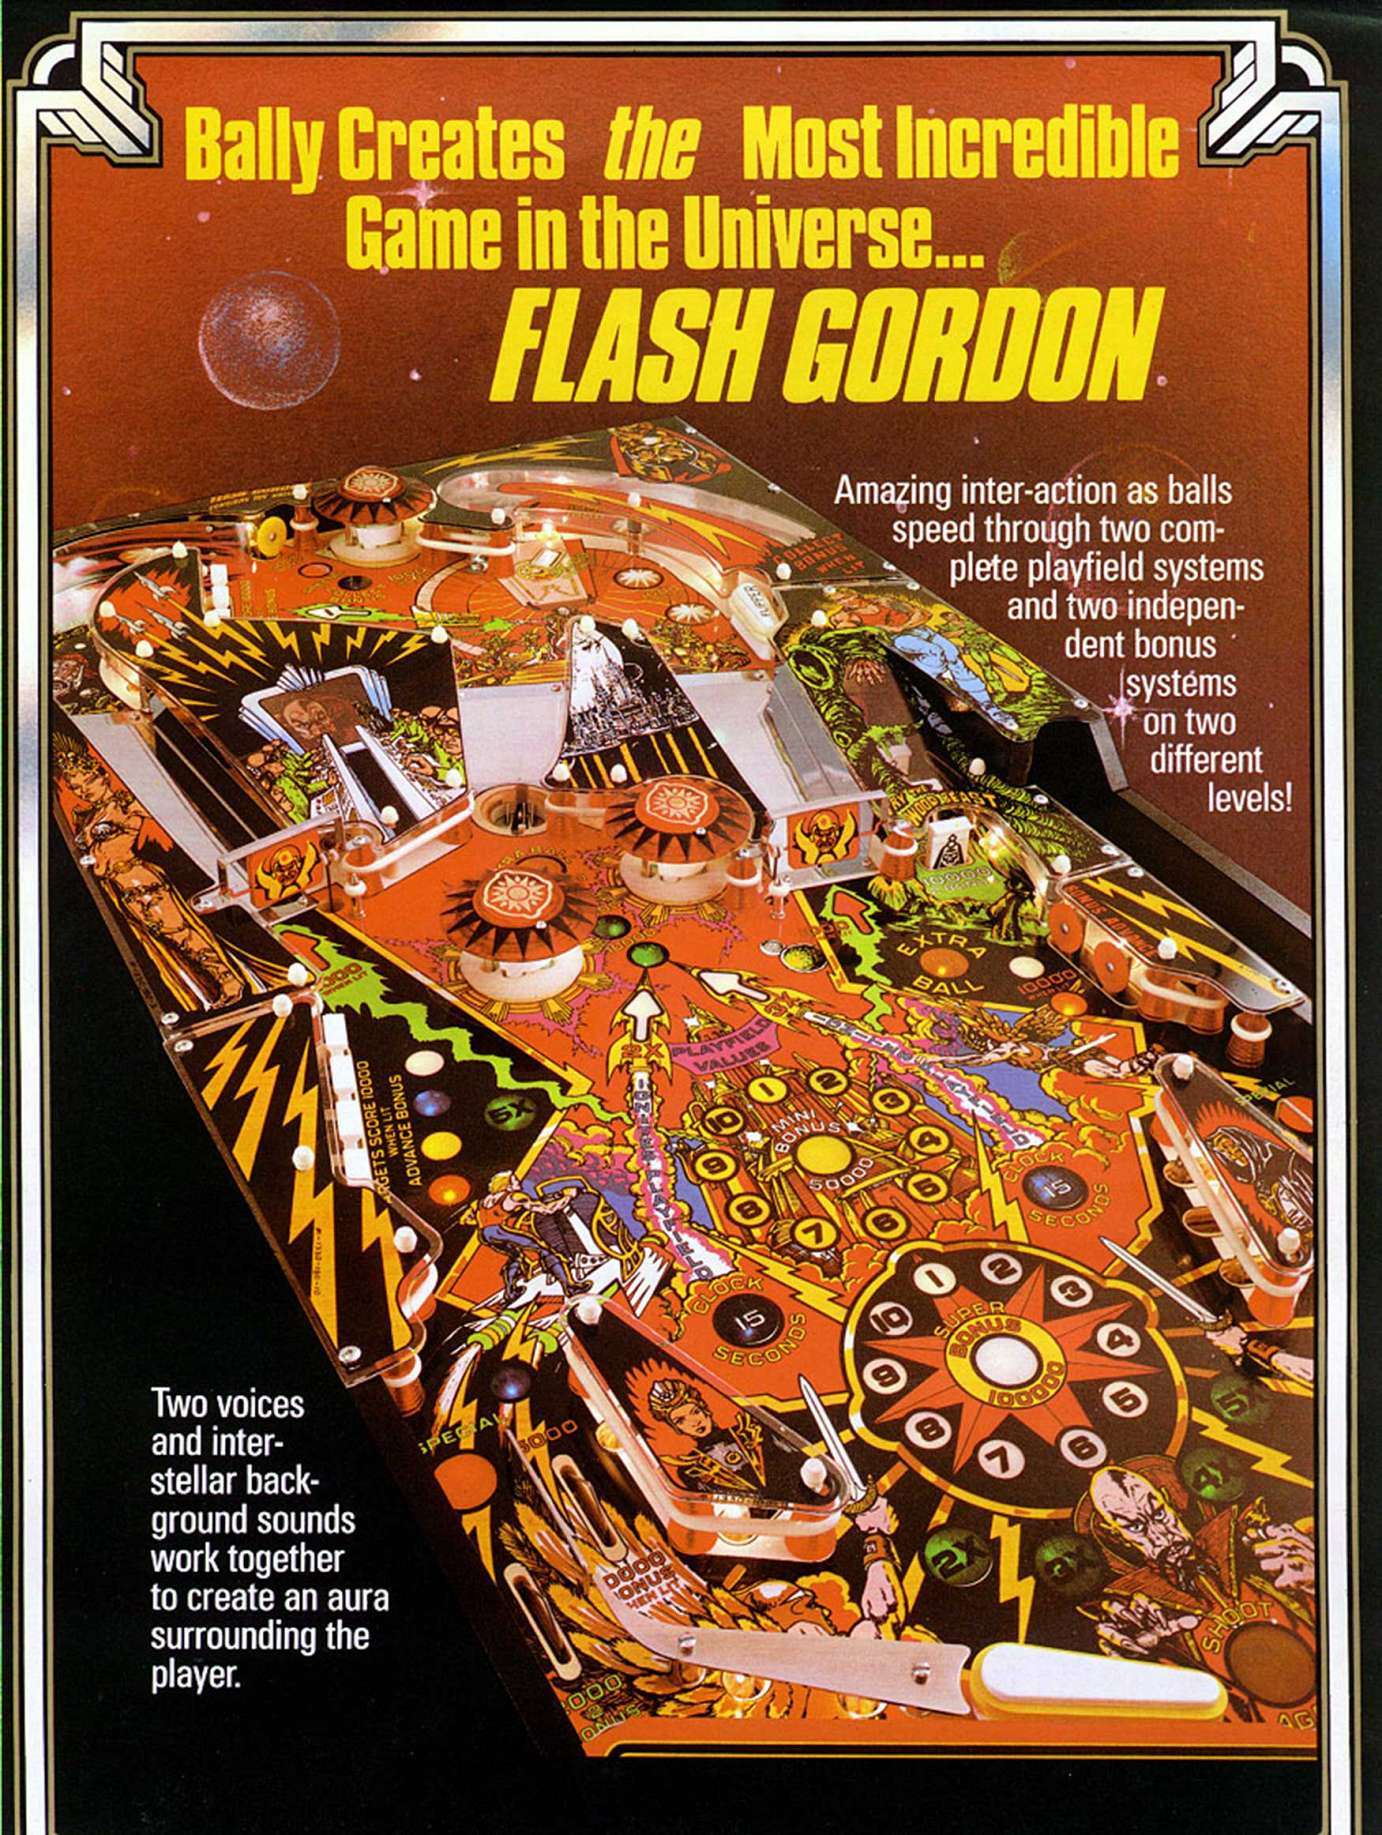 flash-gordon-flyer-2.jpg